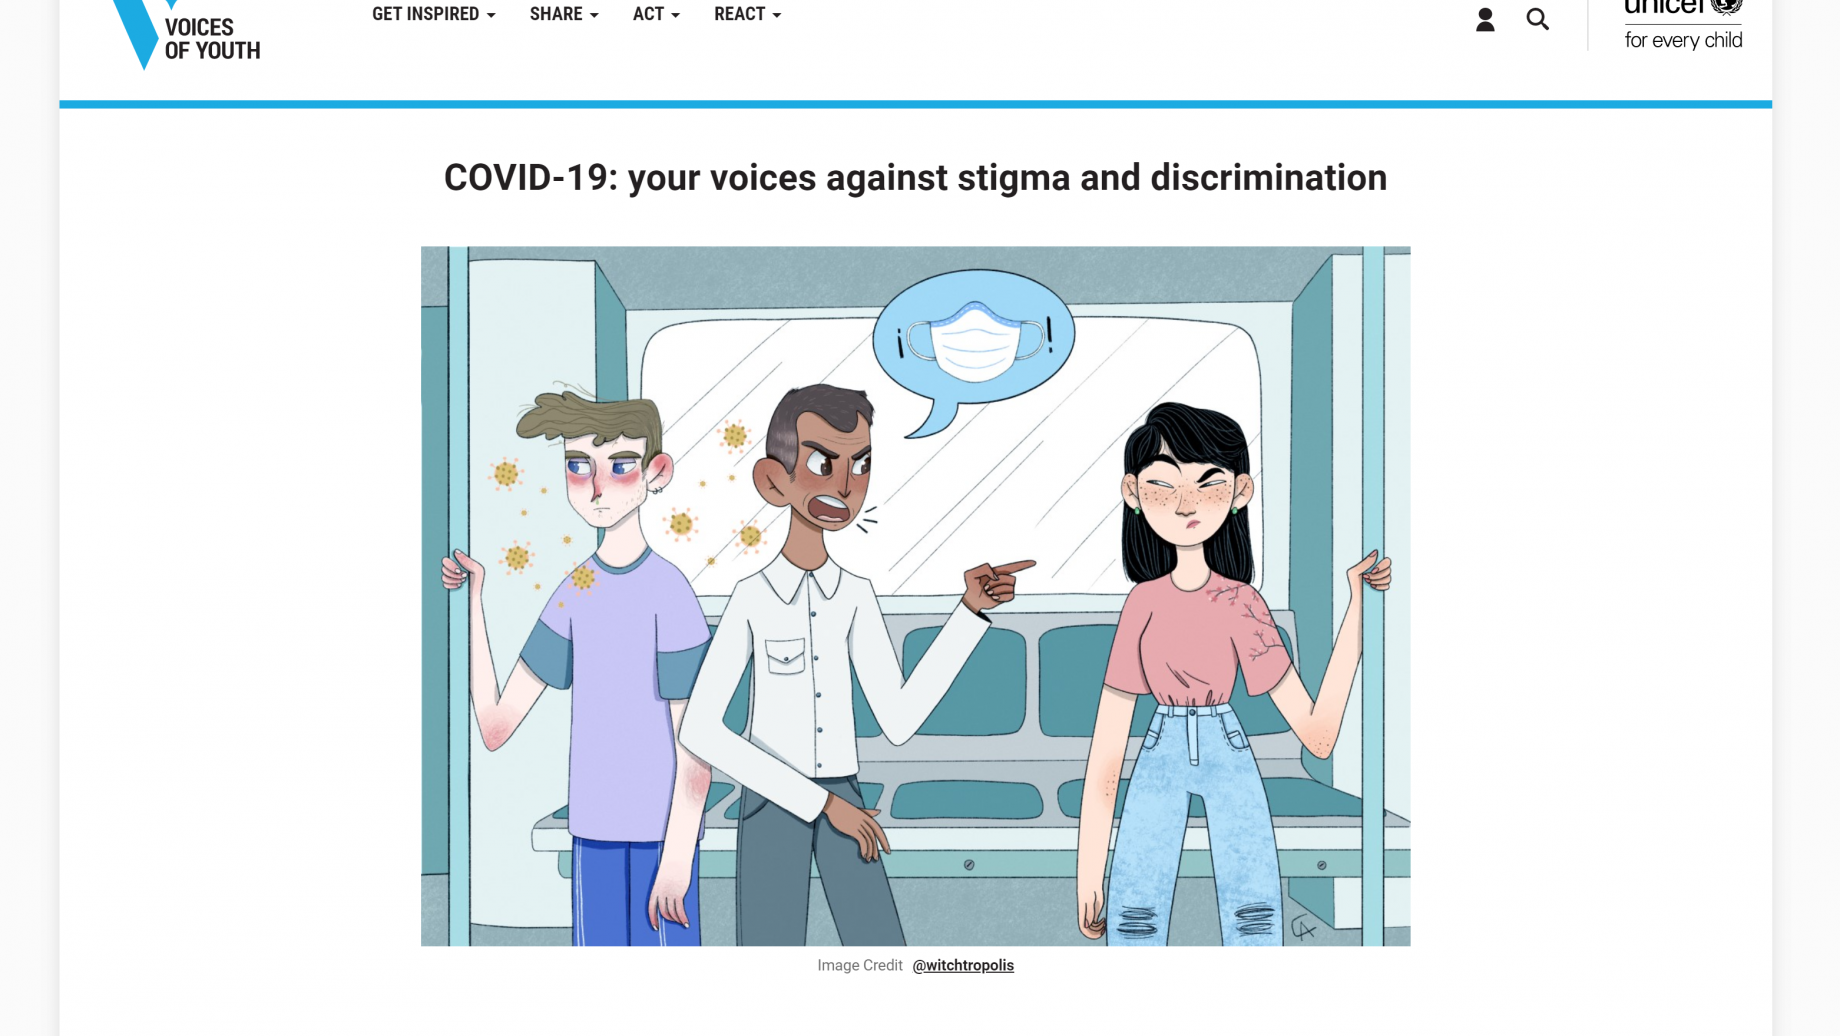 COVID-19: Your Voices Against Stigma and Discrimination. UNICEF